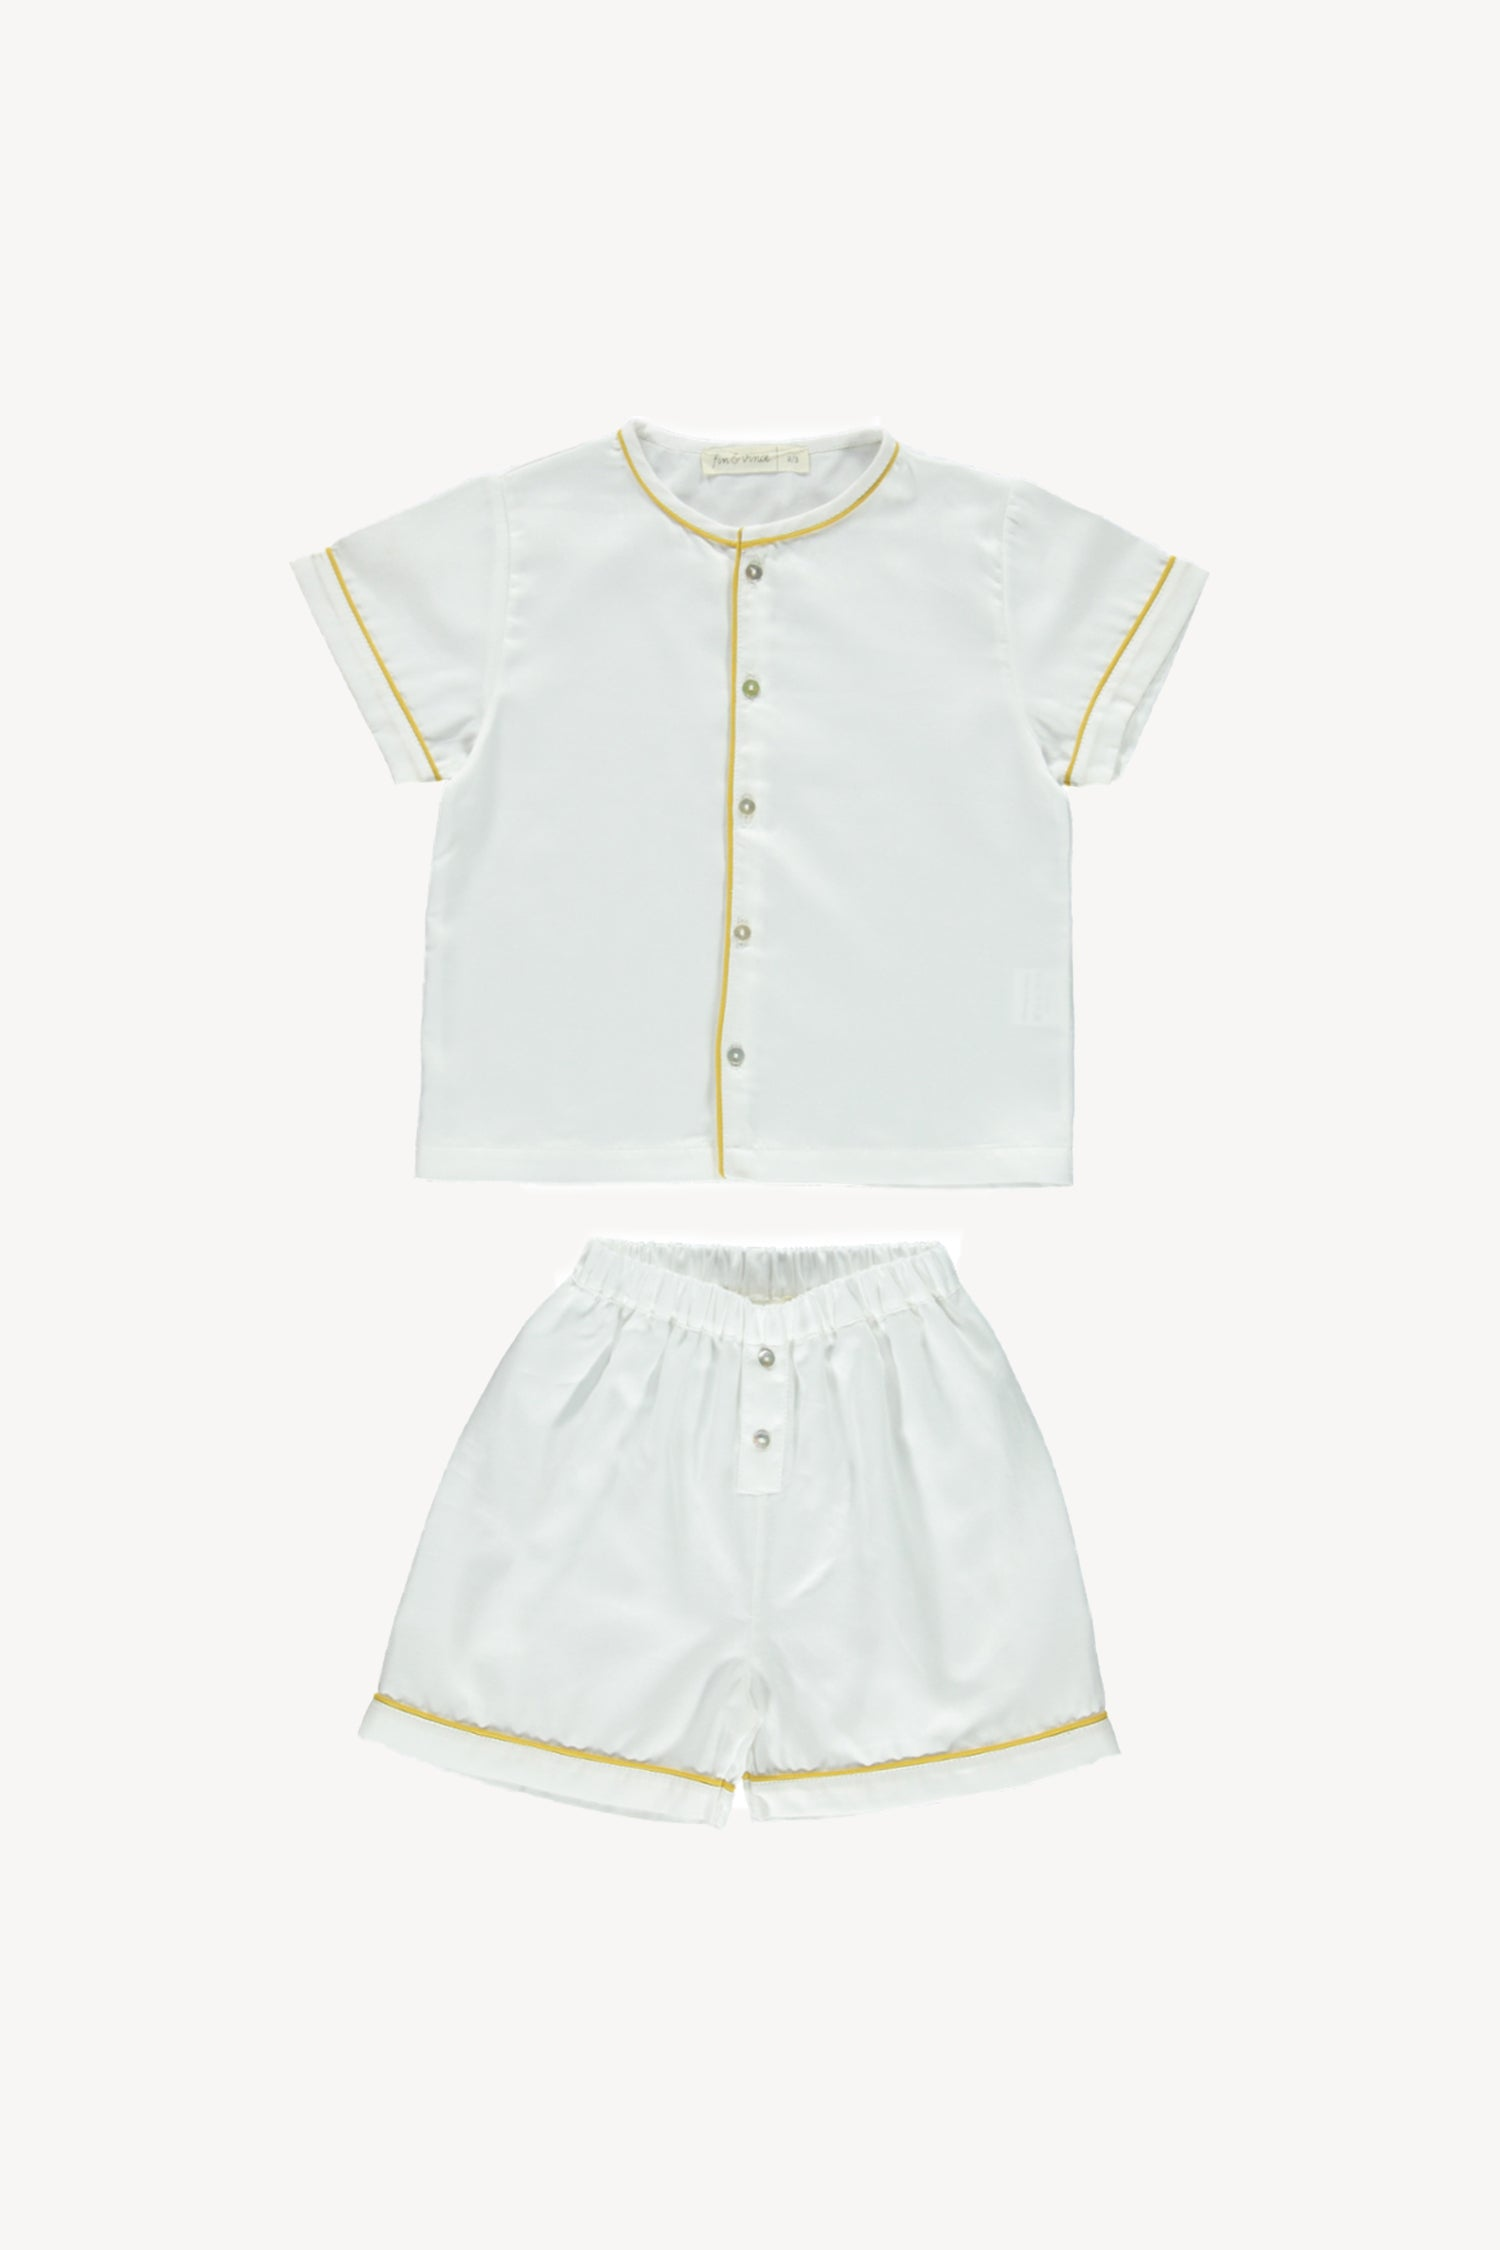 Fin and Vince - Heirloom Trouser Short (White/Mustard)